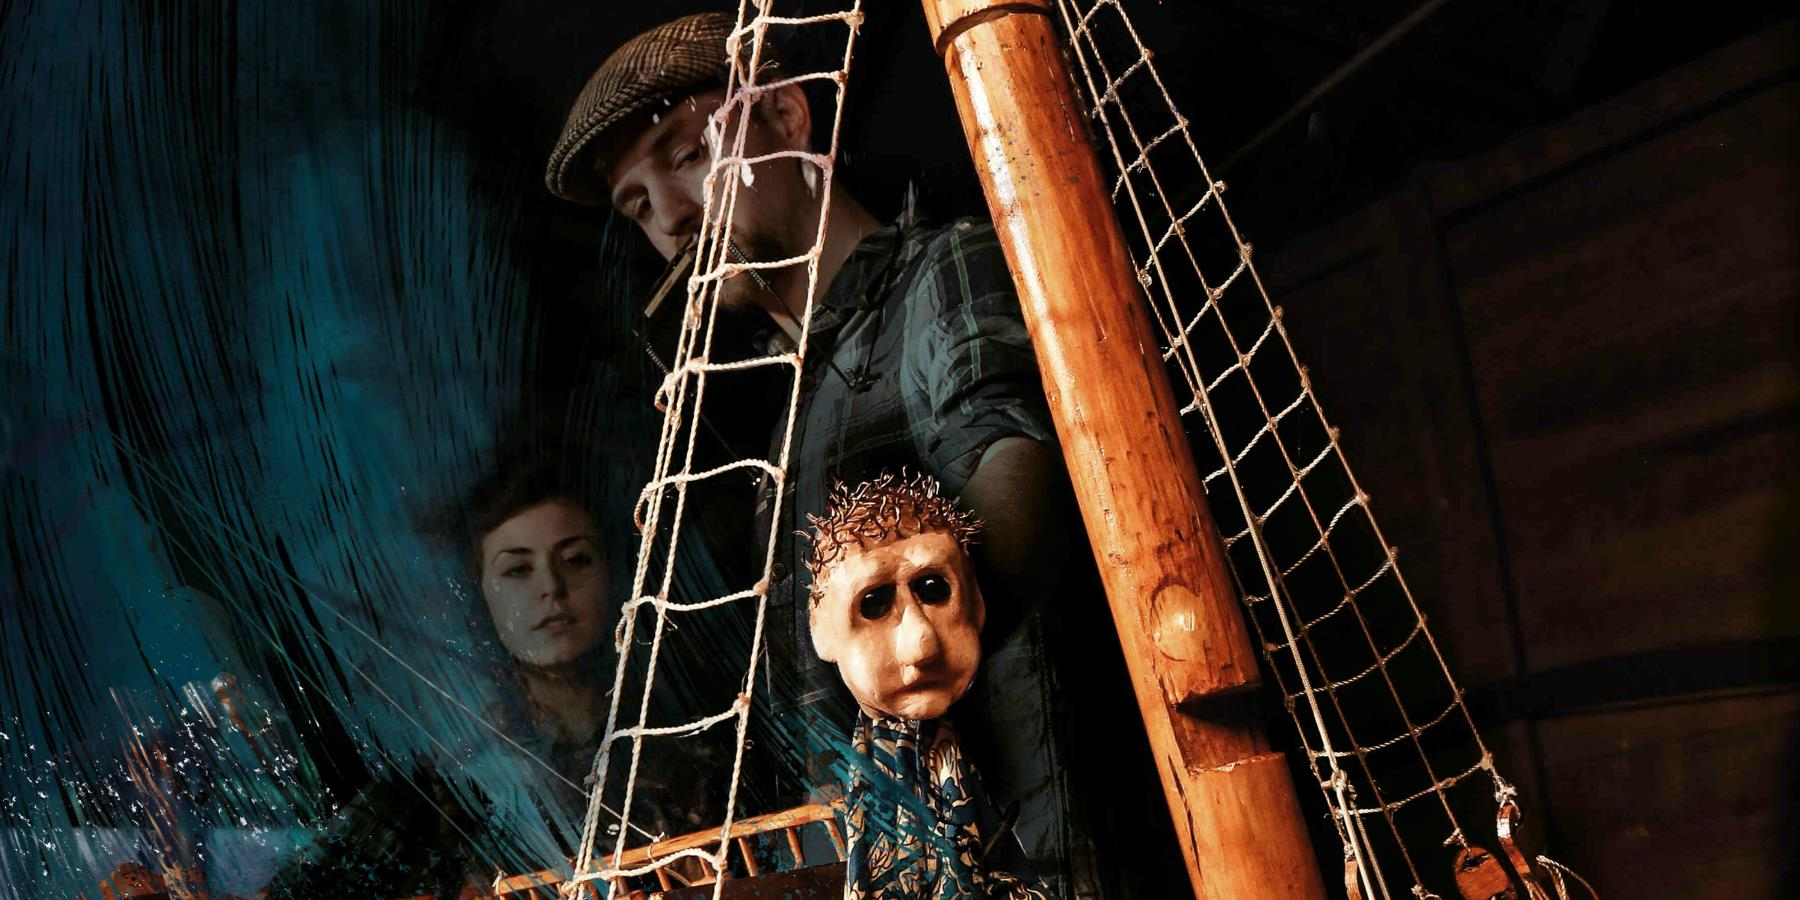 A puppet on a wooden ship, the sea spraying onto deck, the puppeteers in the background